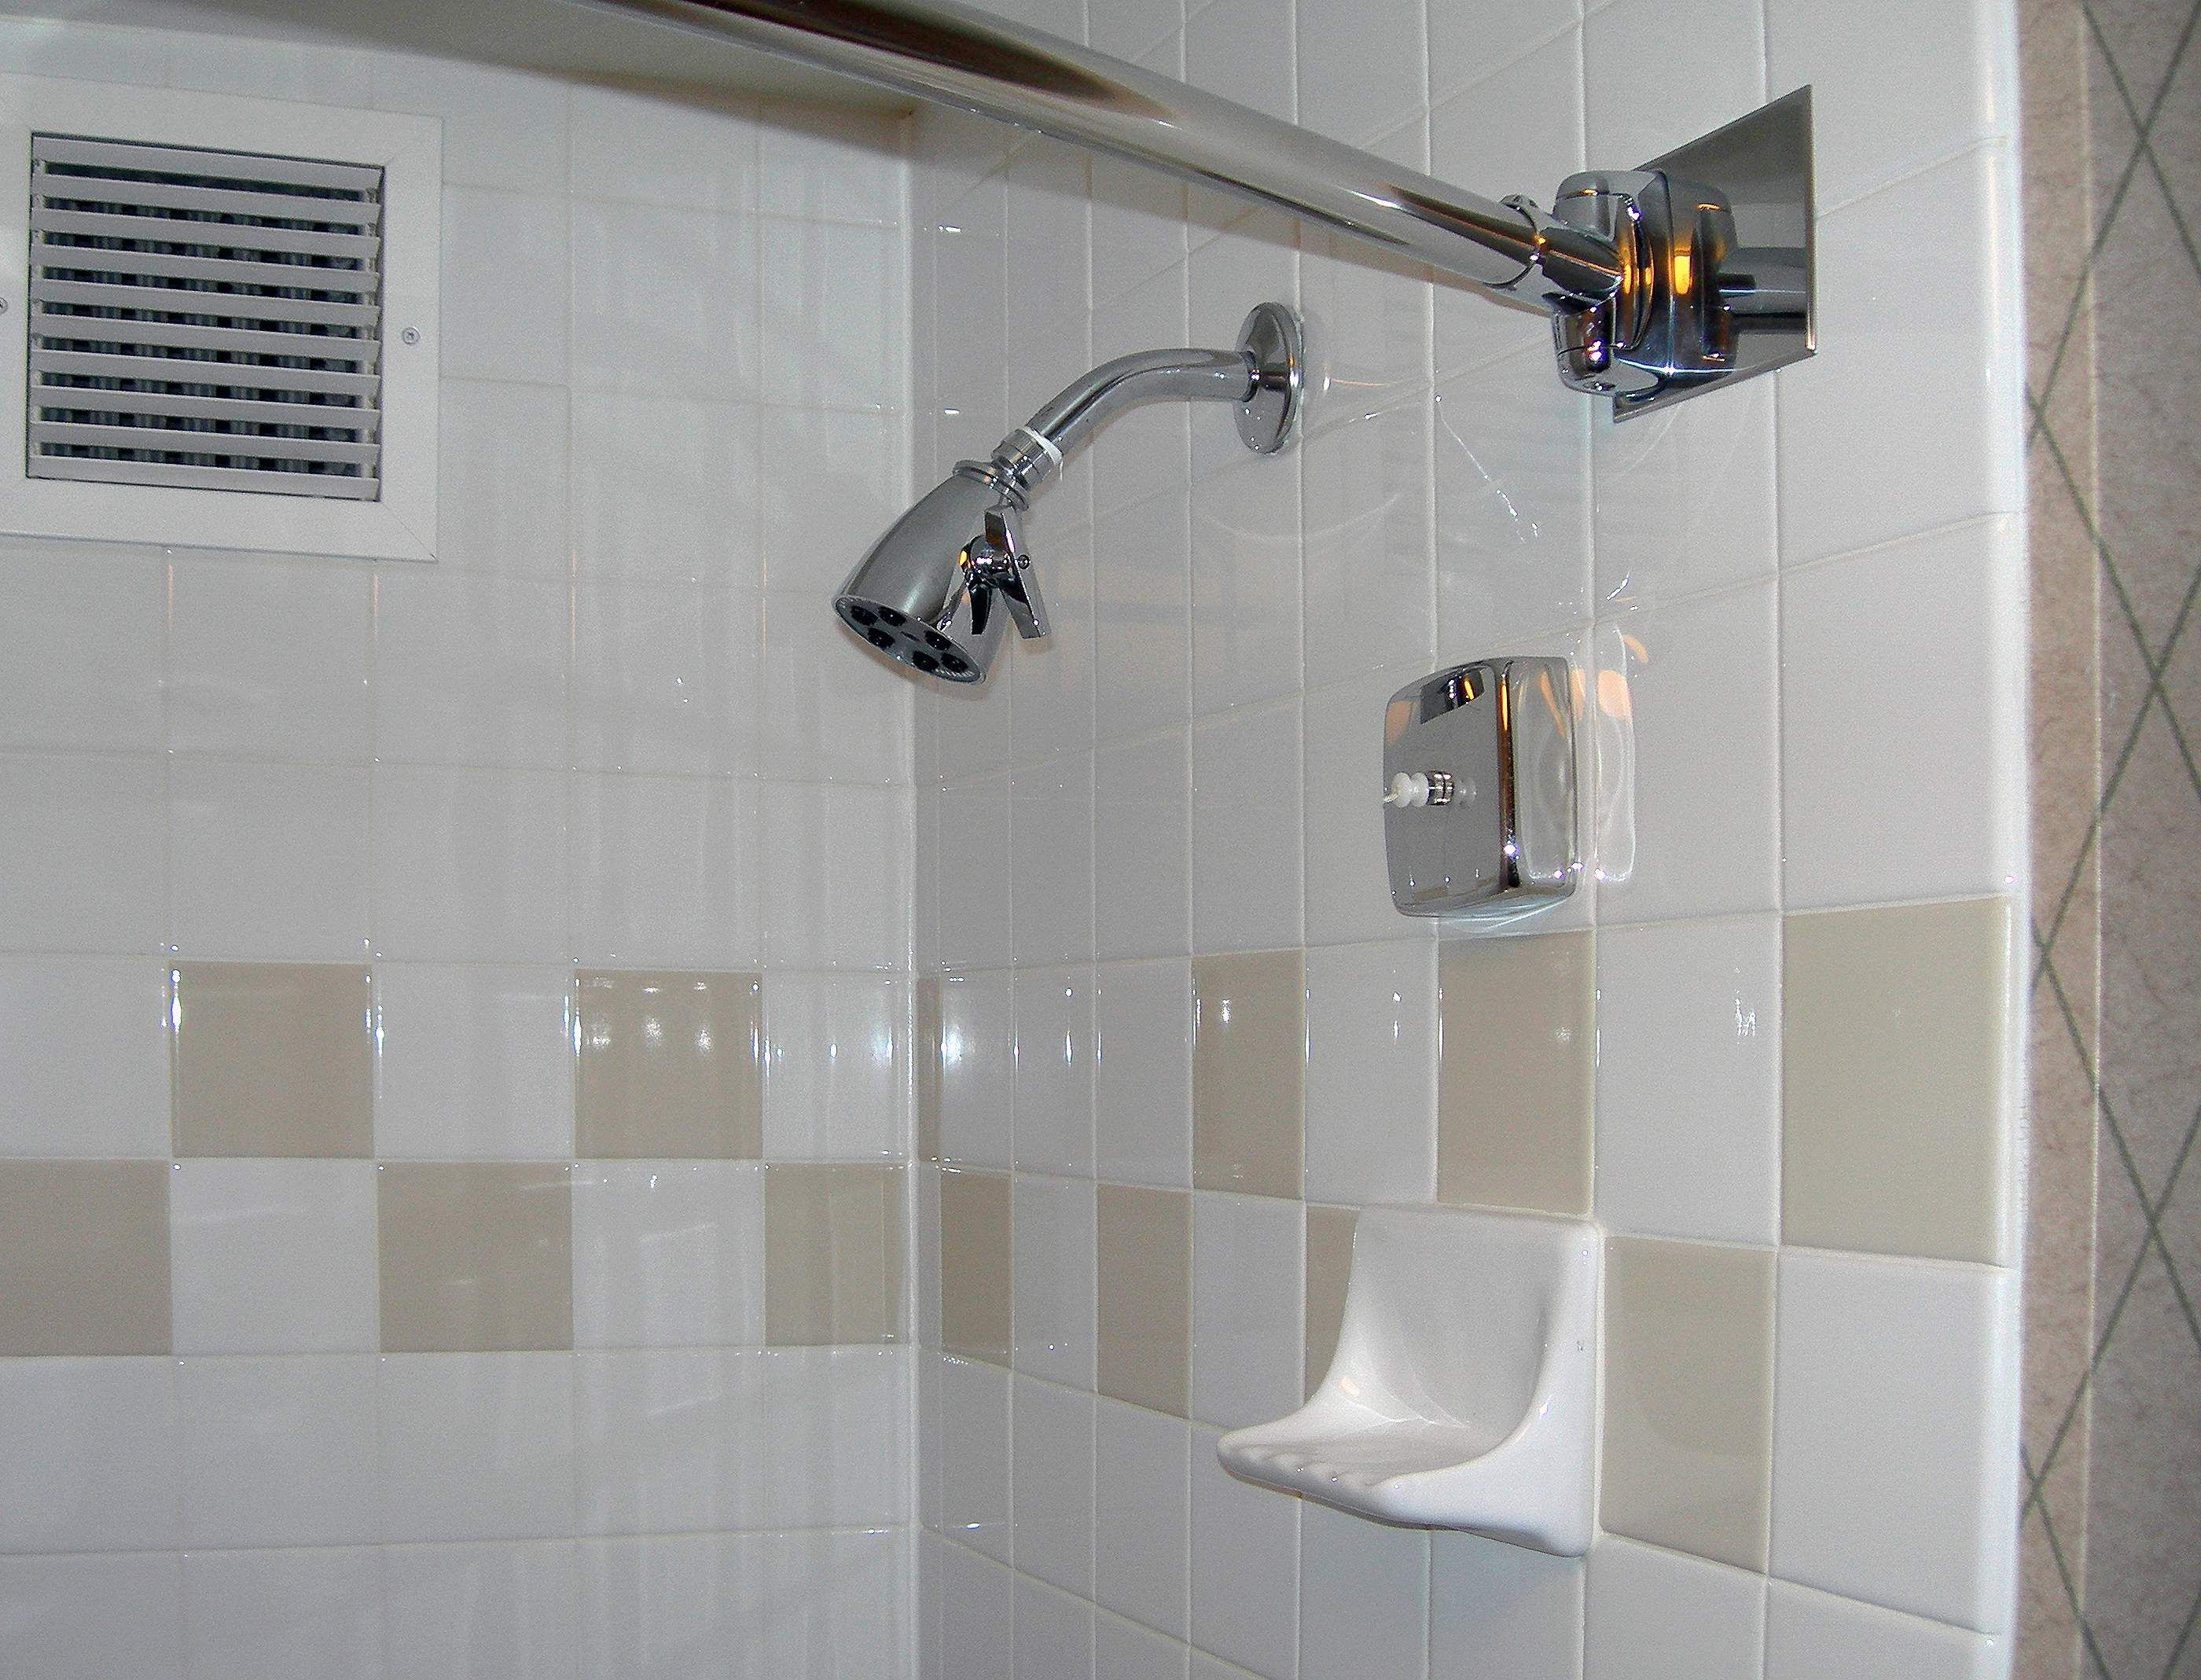 Networx Pink Mold Removal And Prevention In The Bathroom